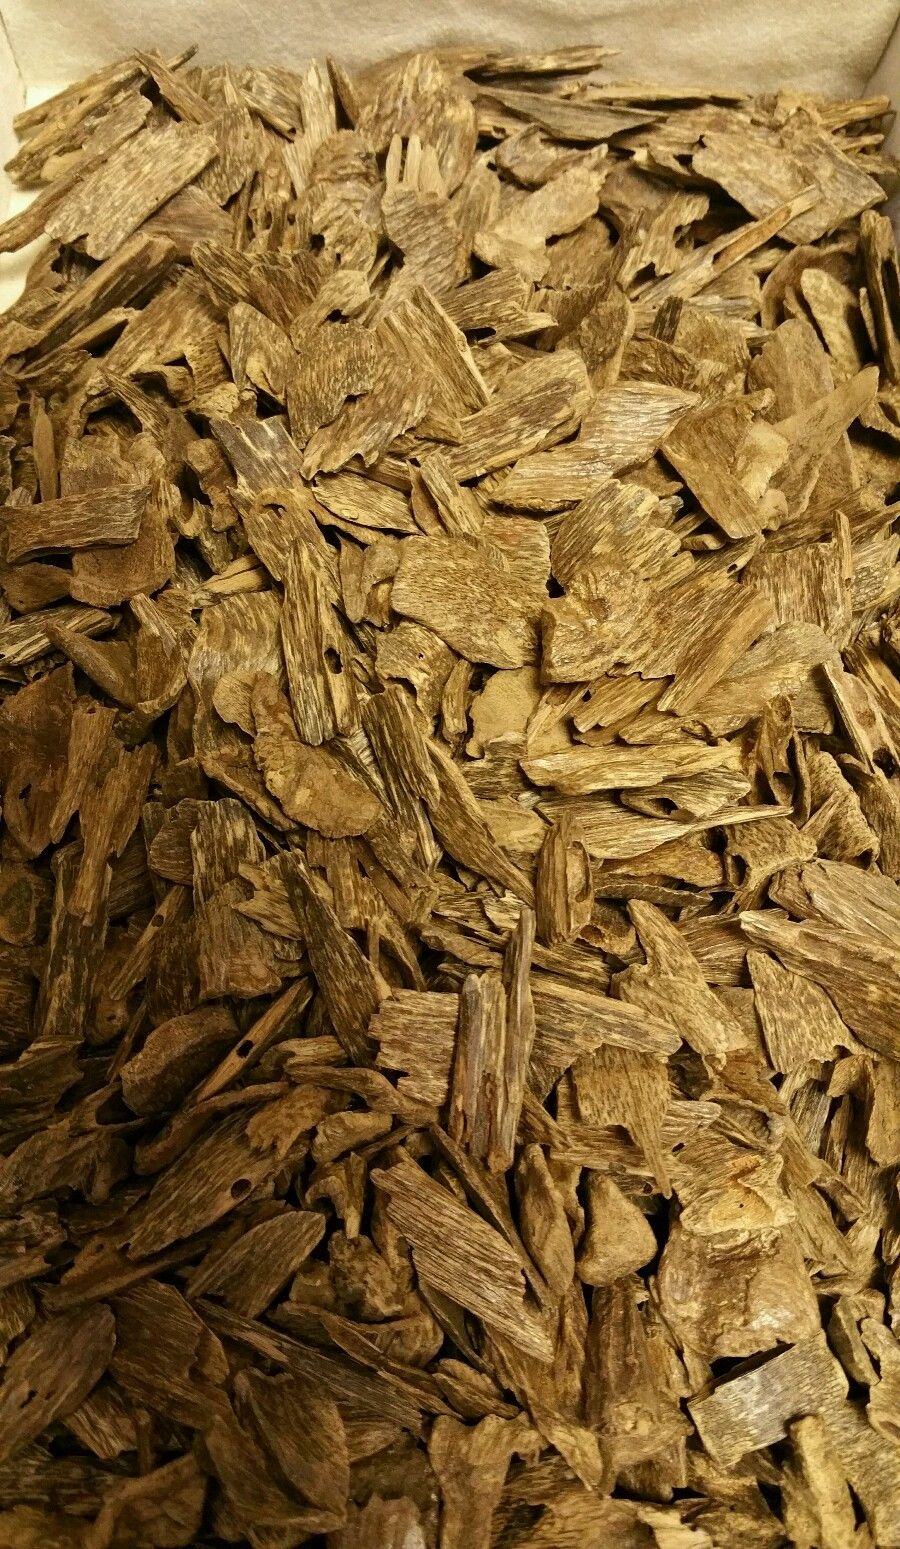 Super Grade Malaysian Oud/Agarwood Incense (wood chips)